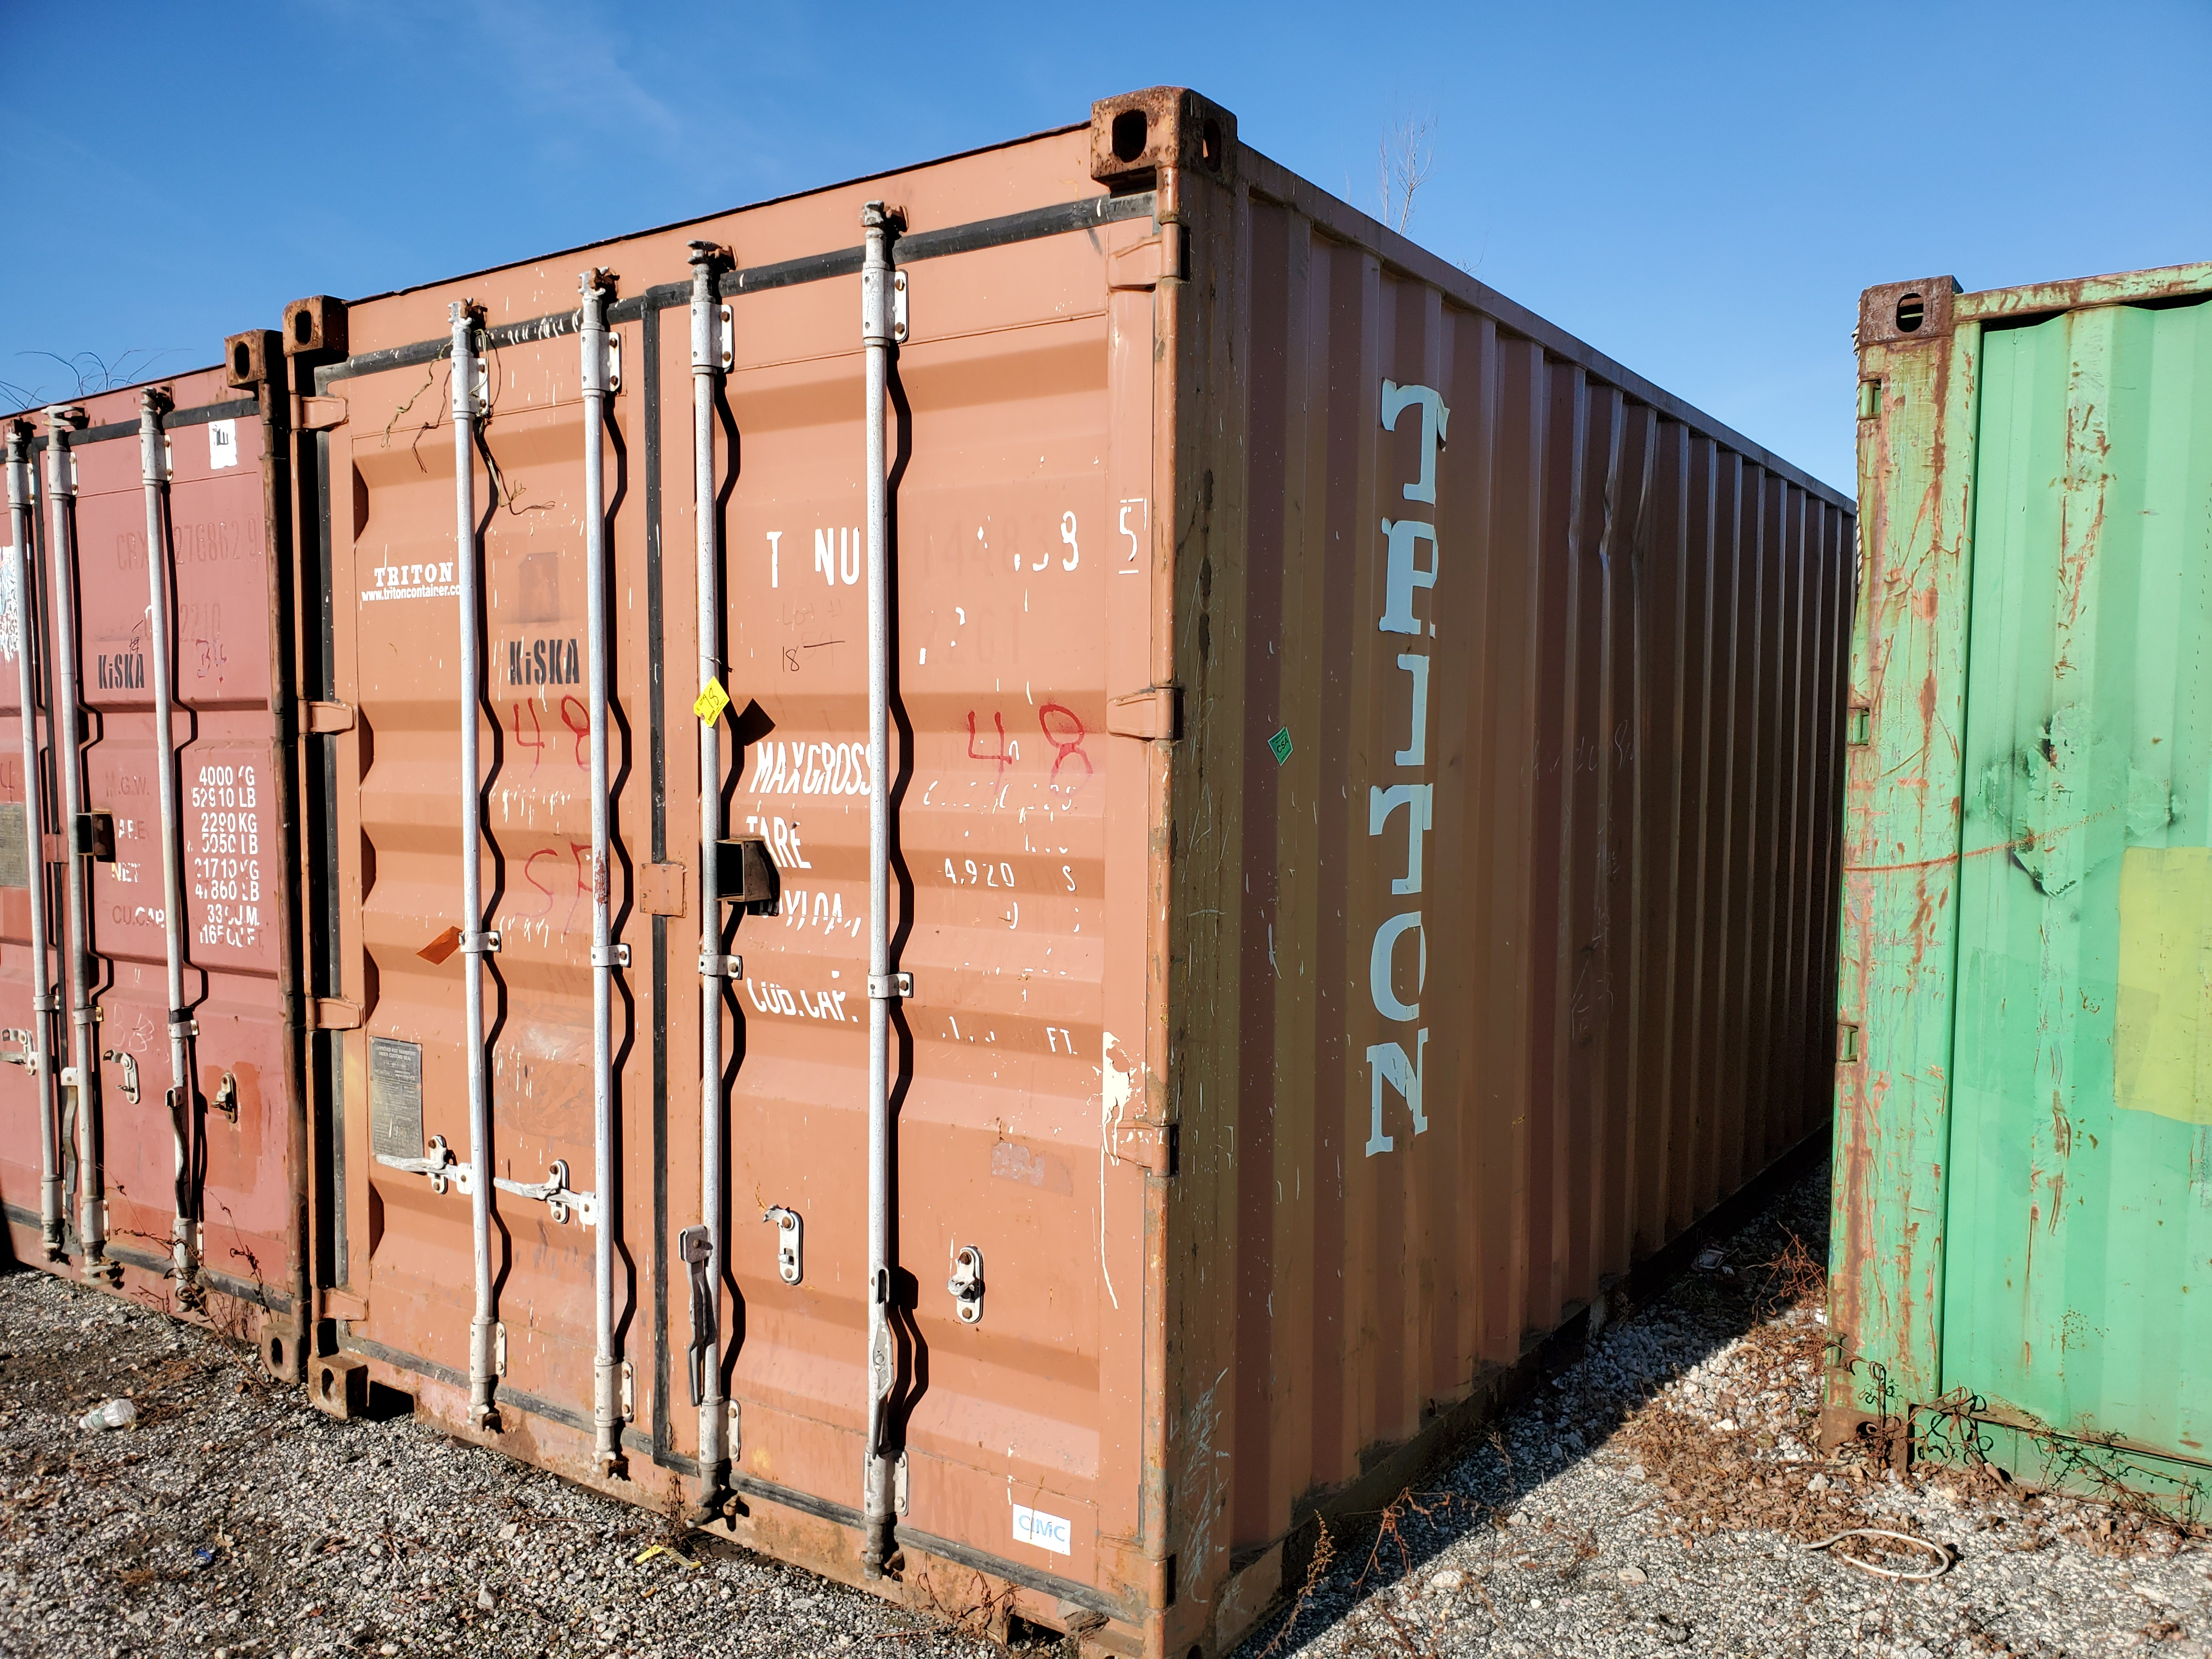 Lot 18 - 20' SHIPPING CONTAINER (TRITON) [LOCATED @ 6 CANAL ROAD, PELHAM, NY (BRONX)]